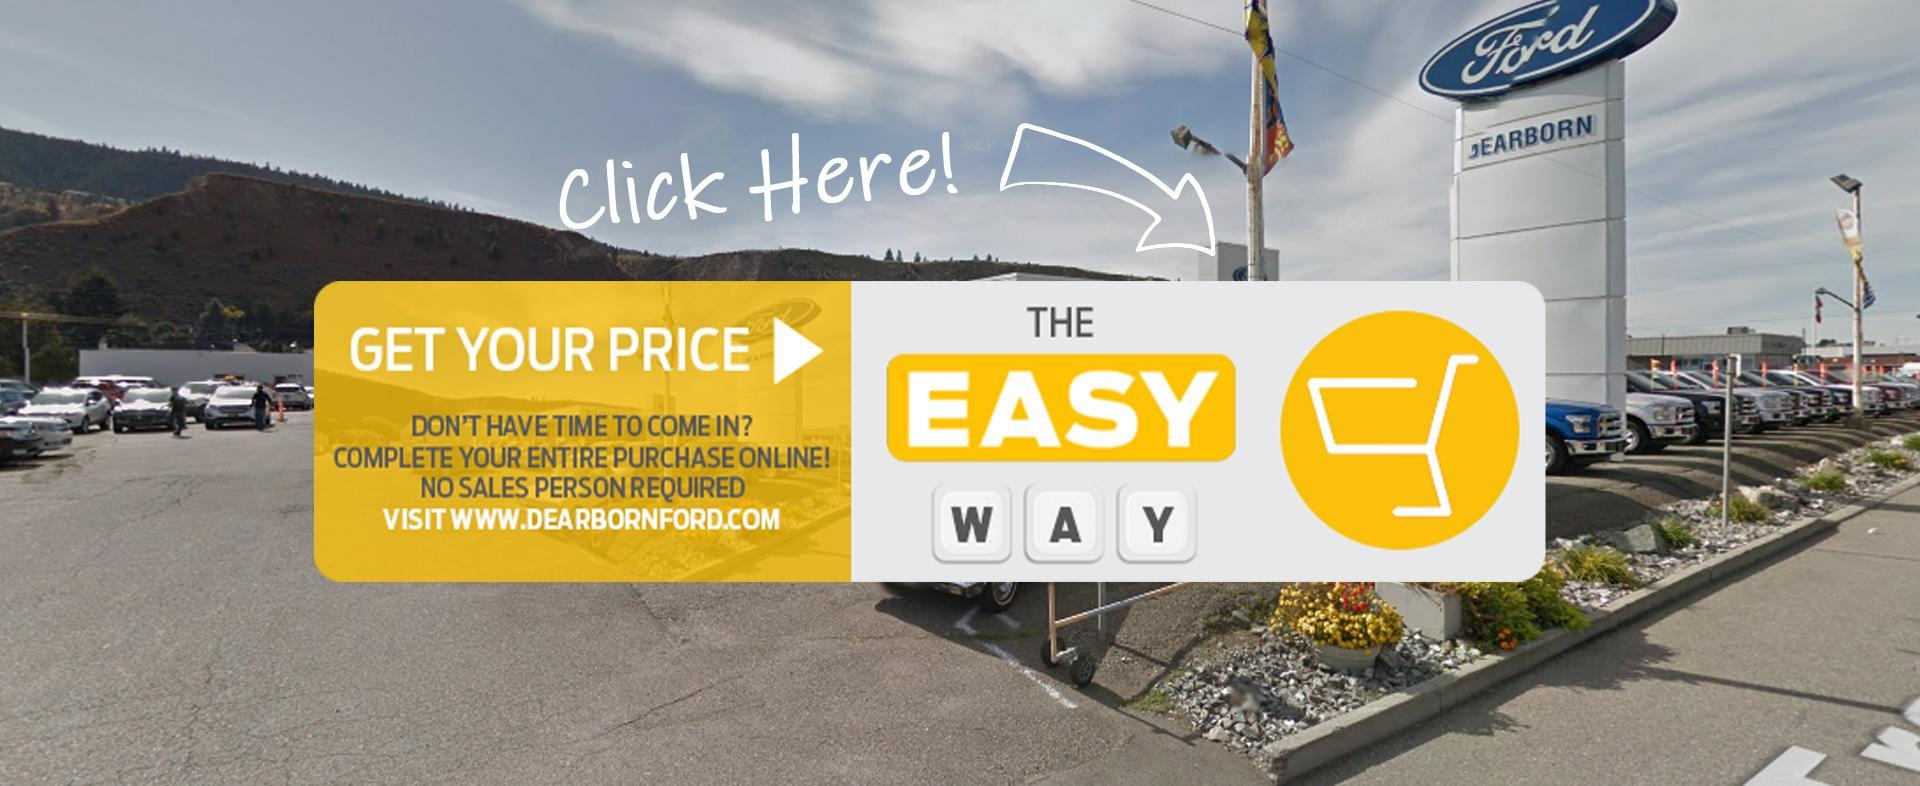 The Easy Way image